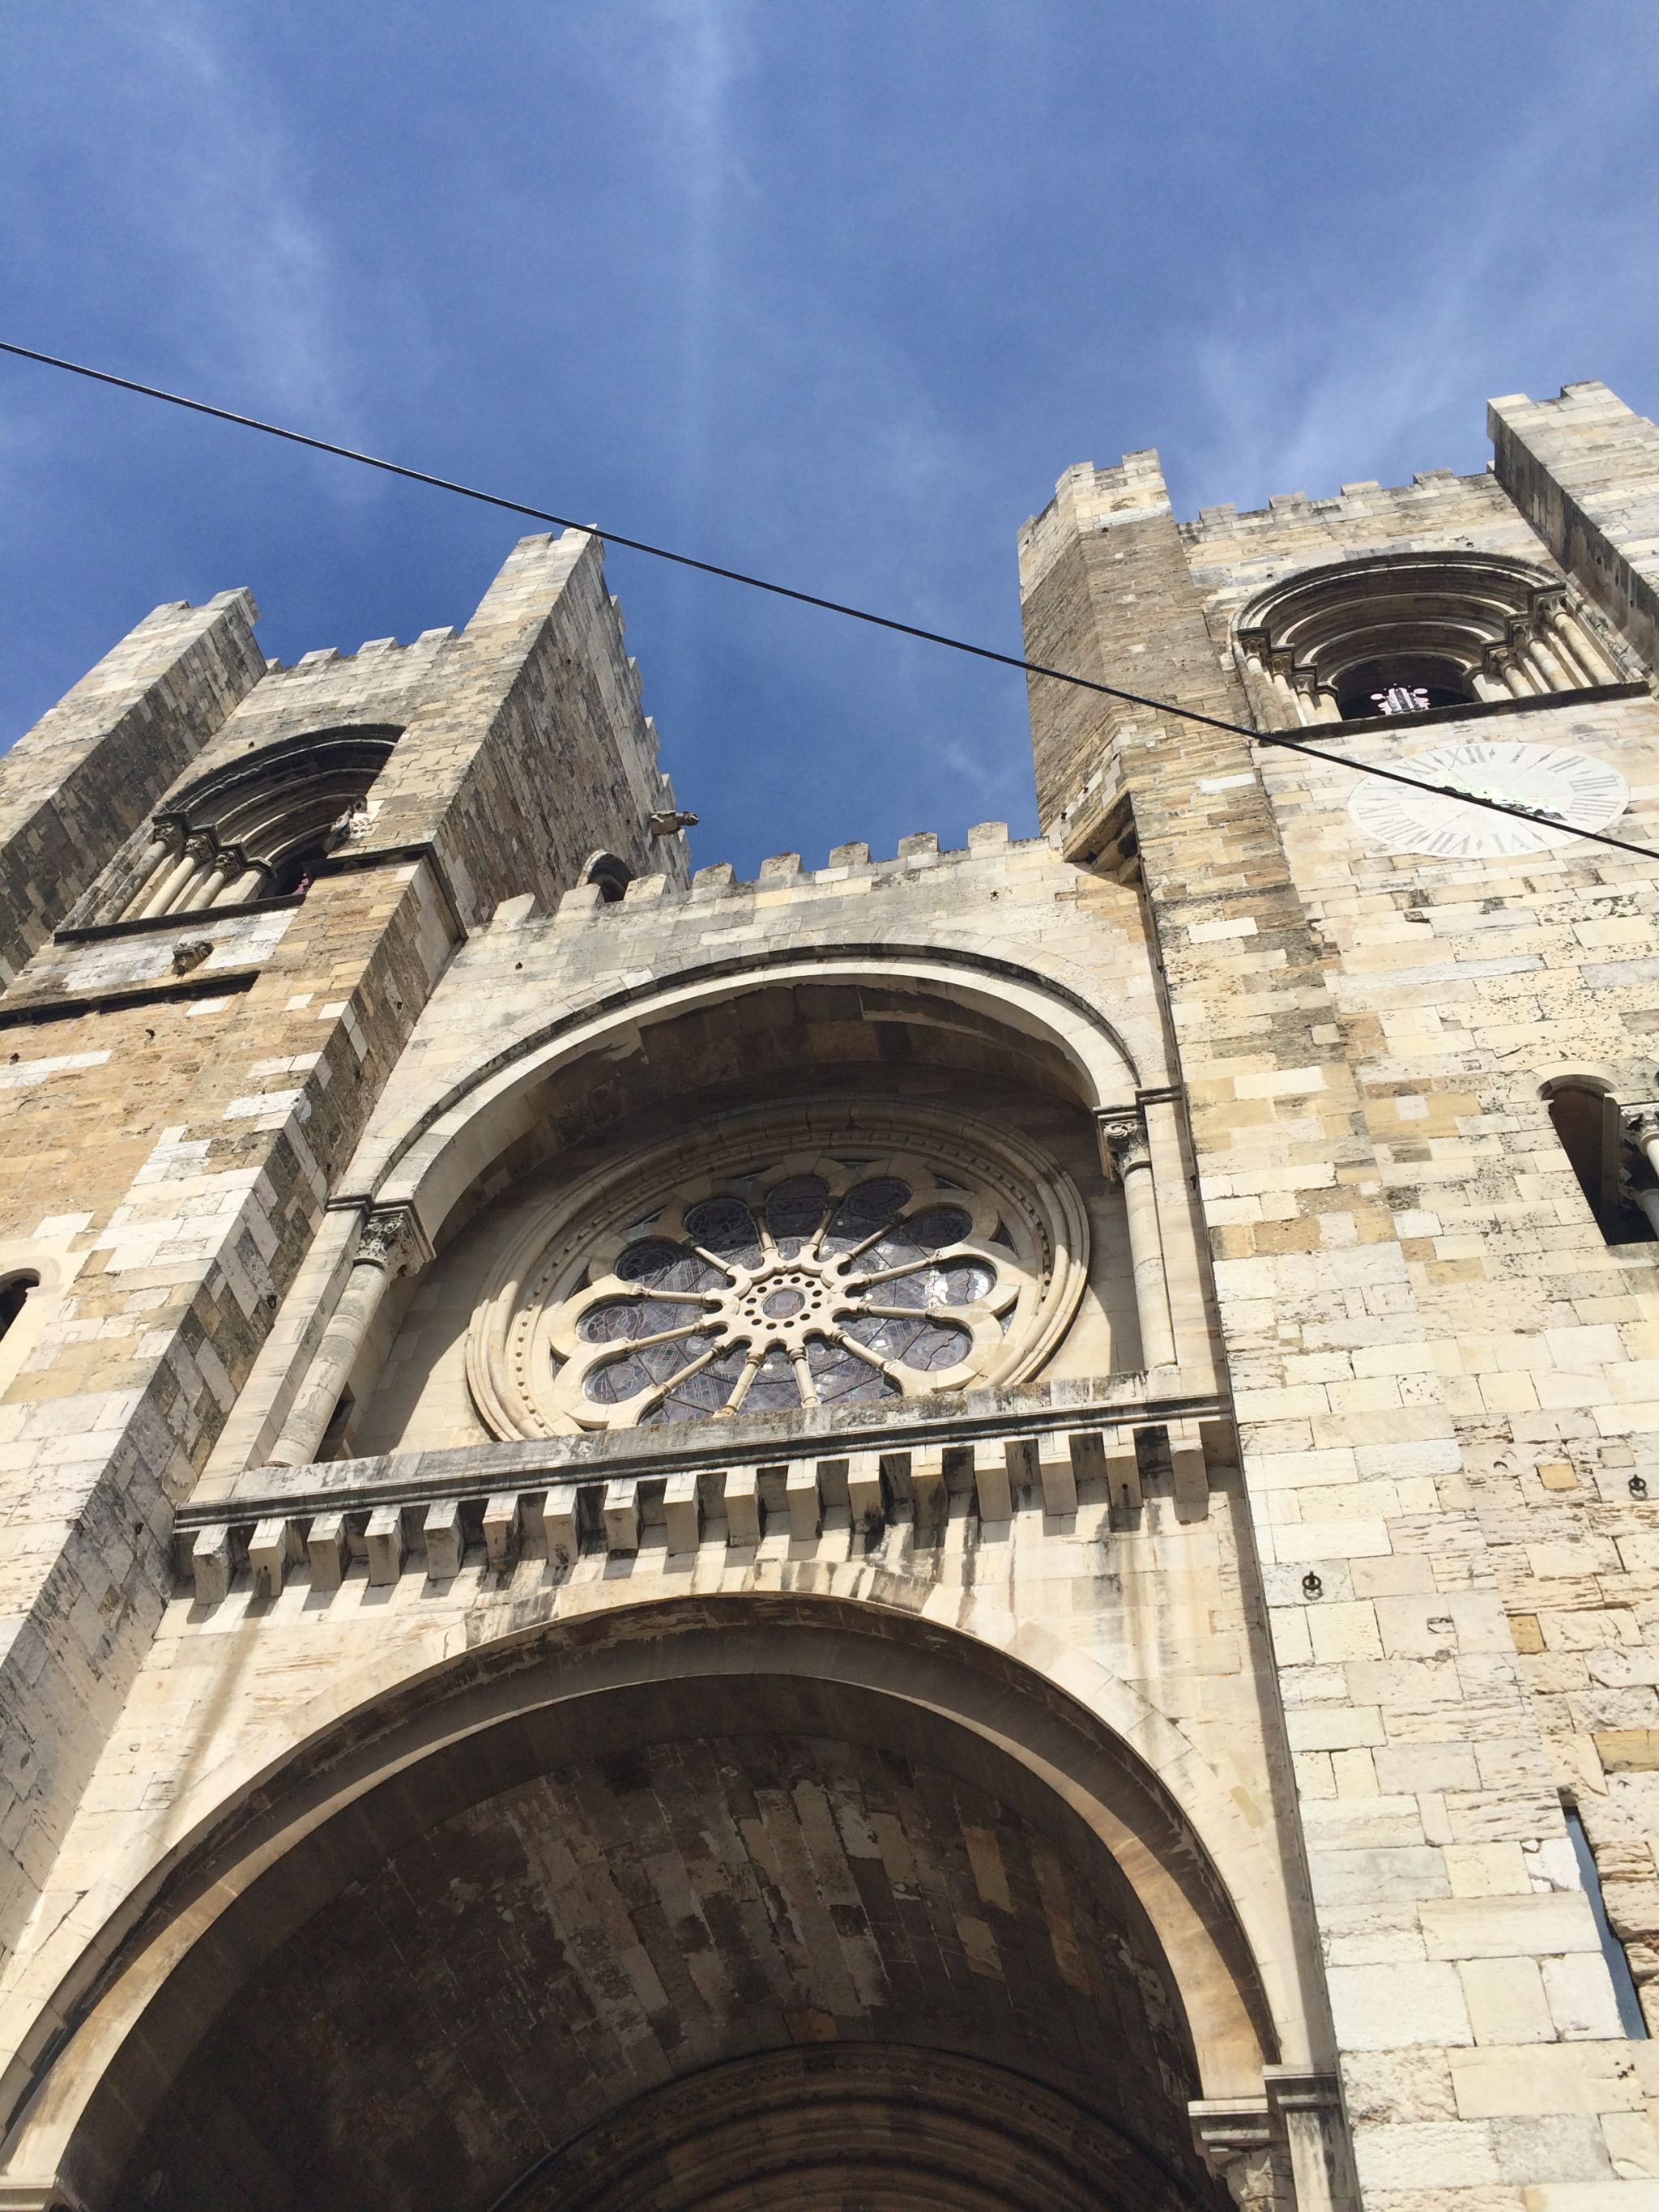 The facade of Lisbon Cathedral.